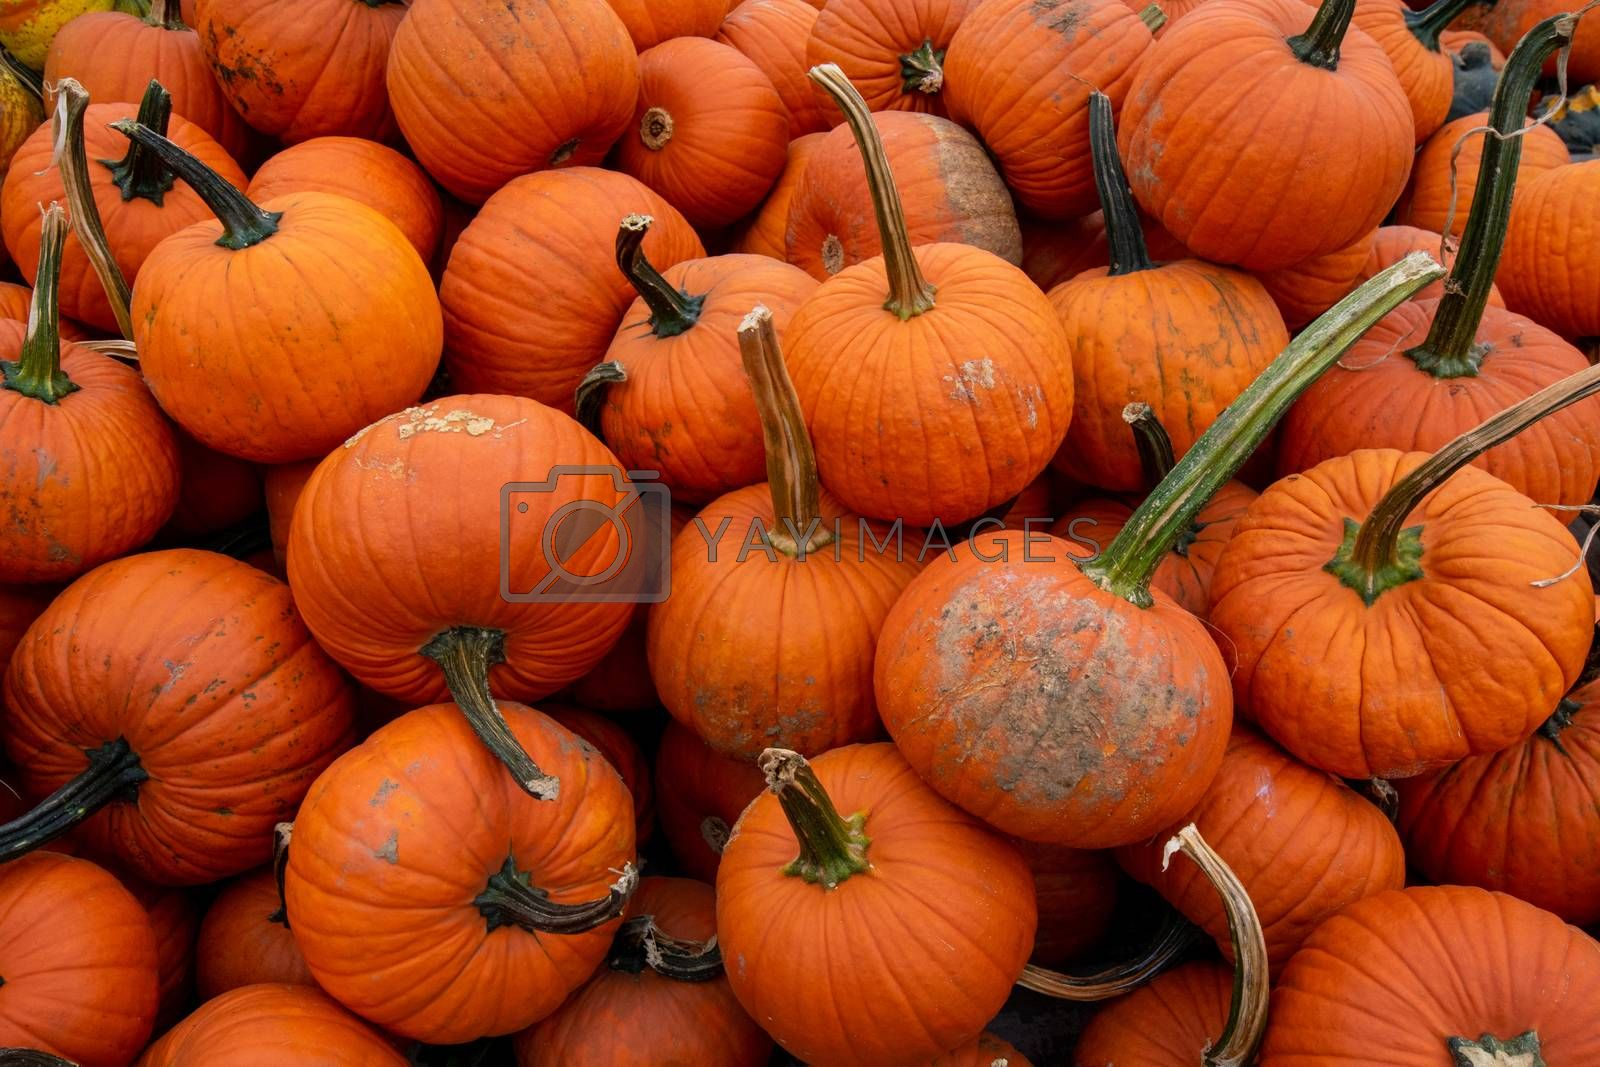 A Pile of Medium-Sized Orange Pumpkins in a Wooden Crate at a Farmer's Market Filling the frame